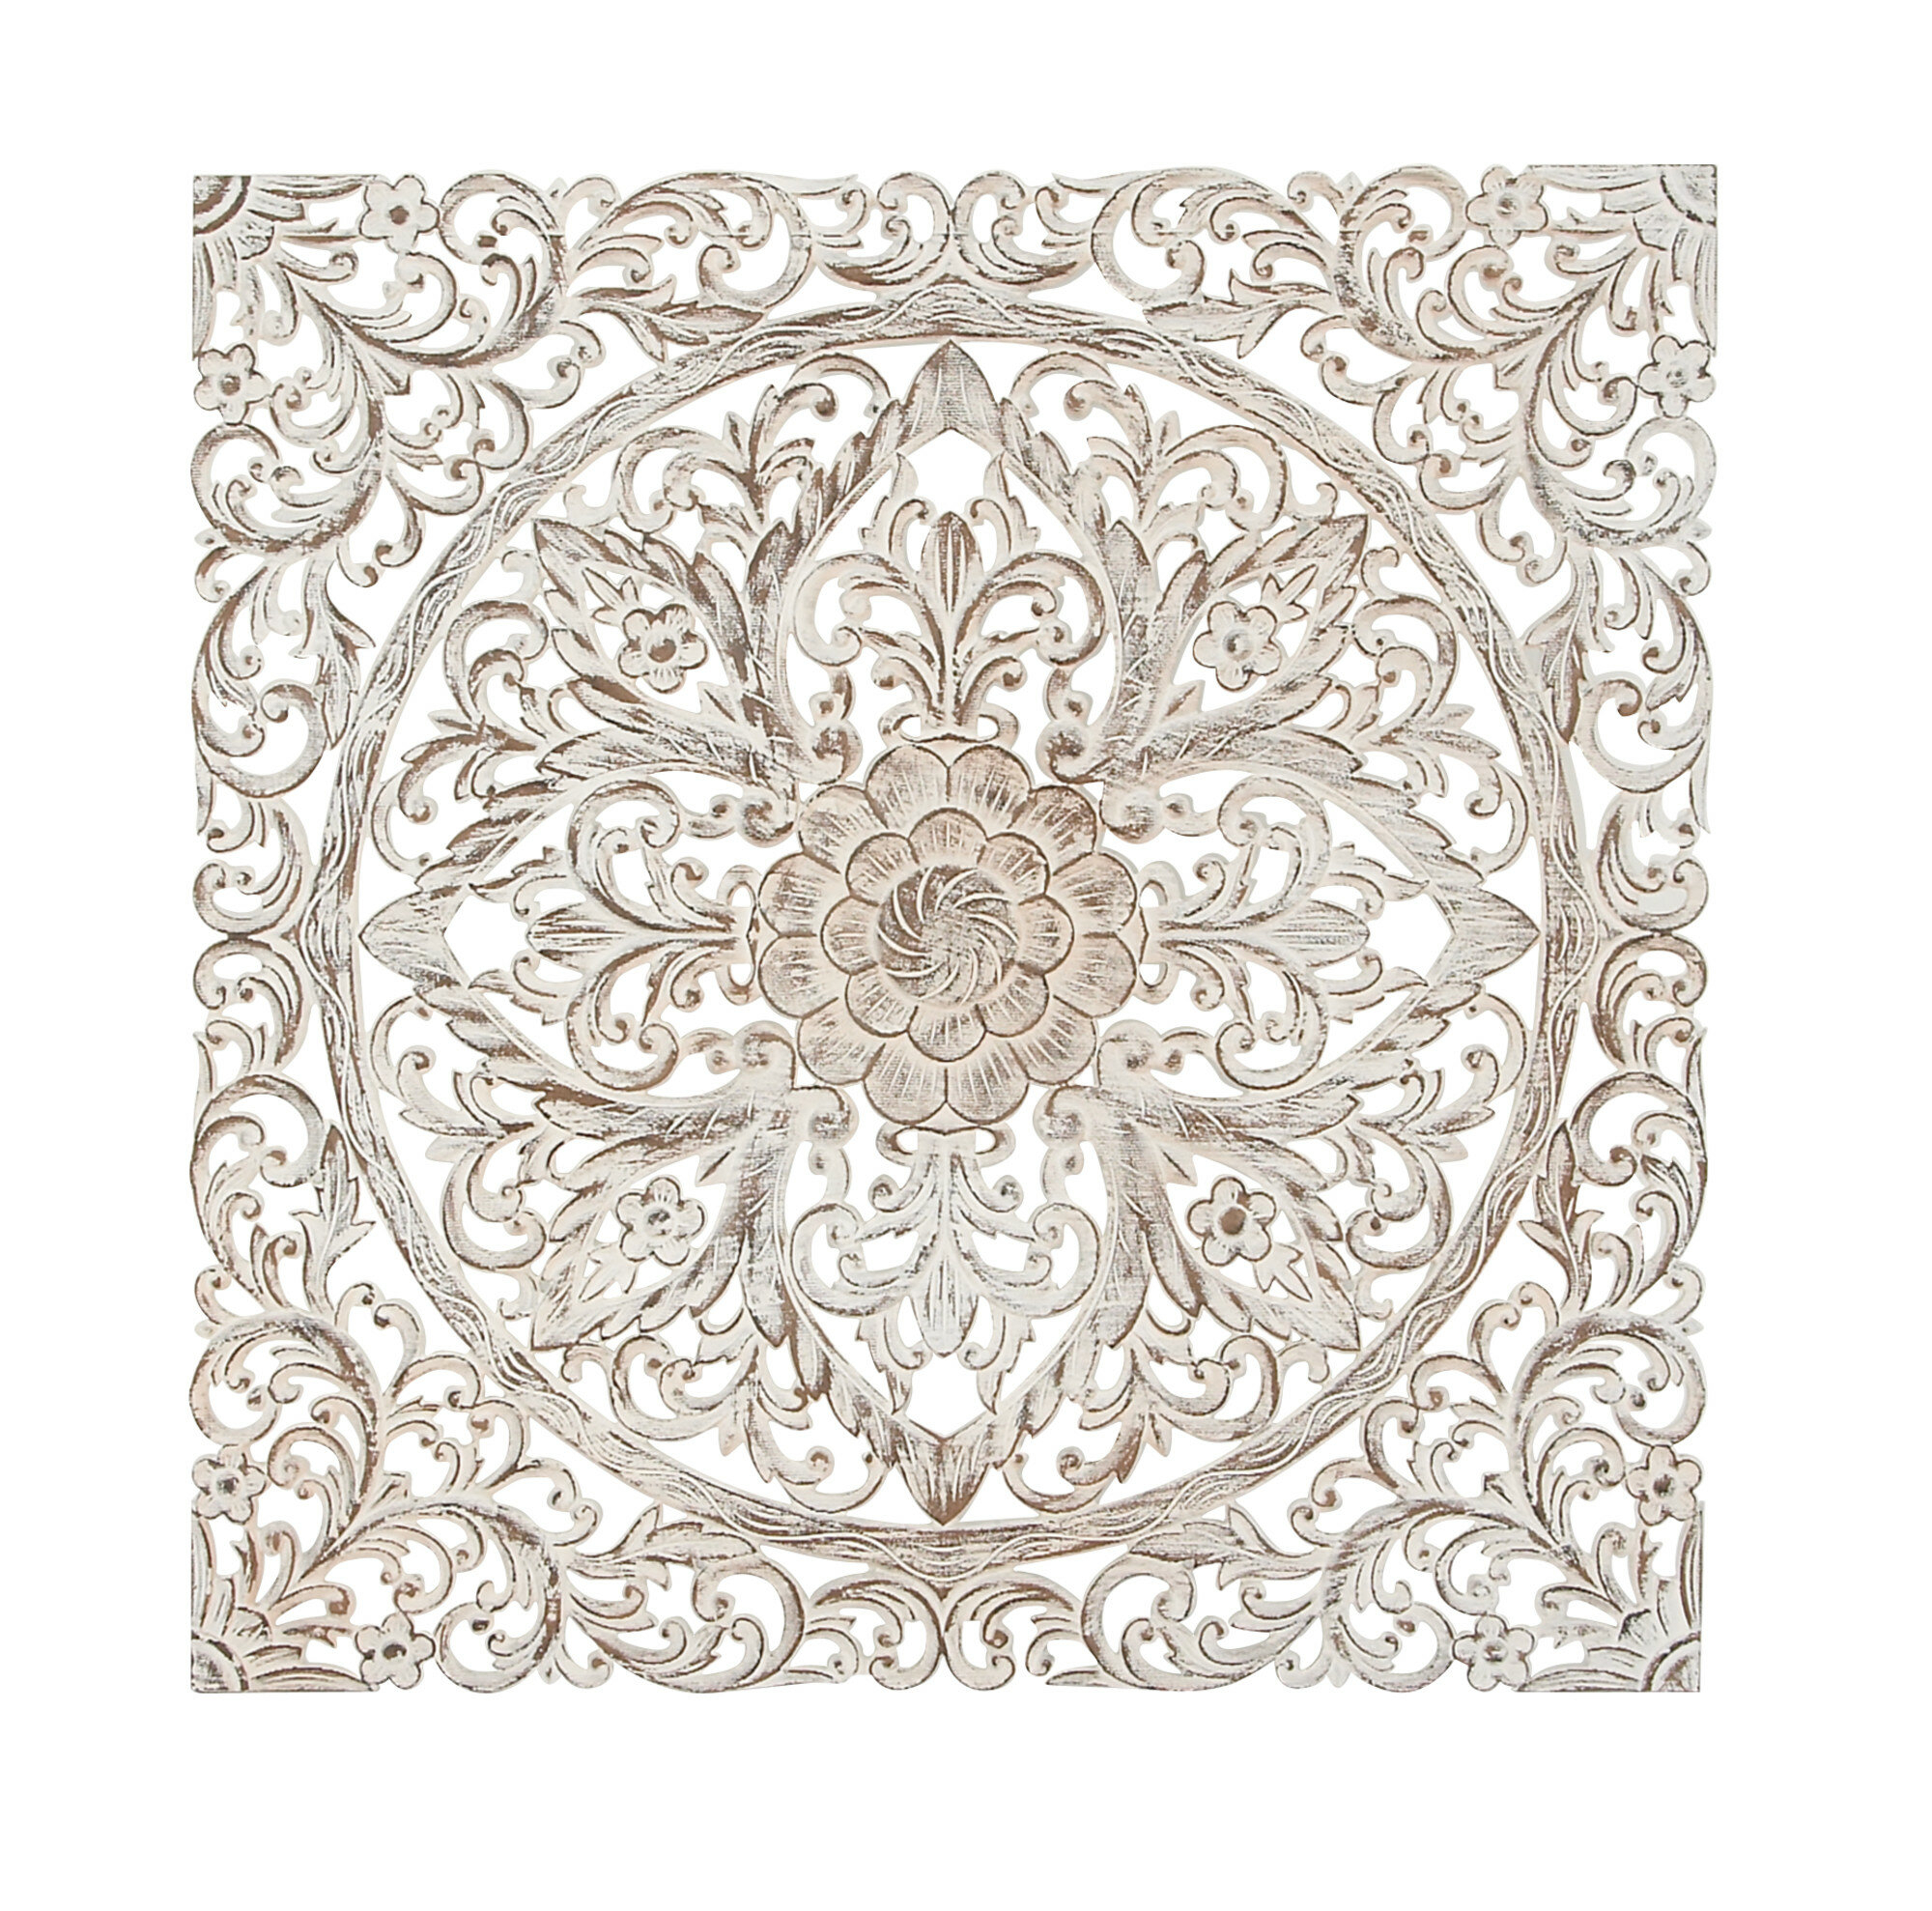 Joss & Main Regarding European Medallion Wall Decor (View 6 of 20)